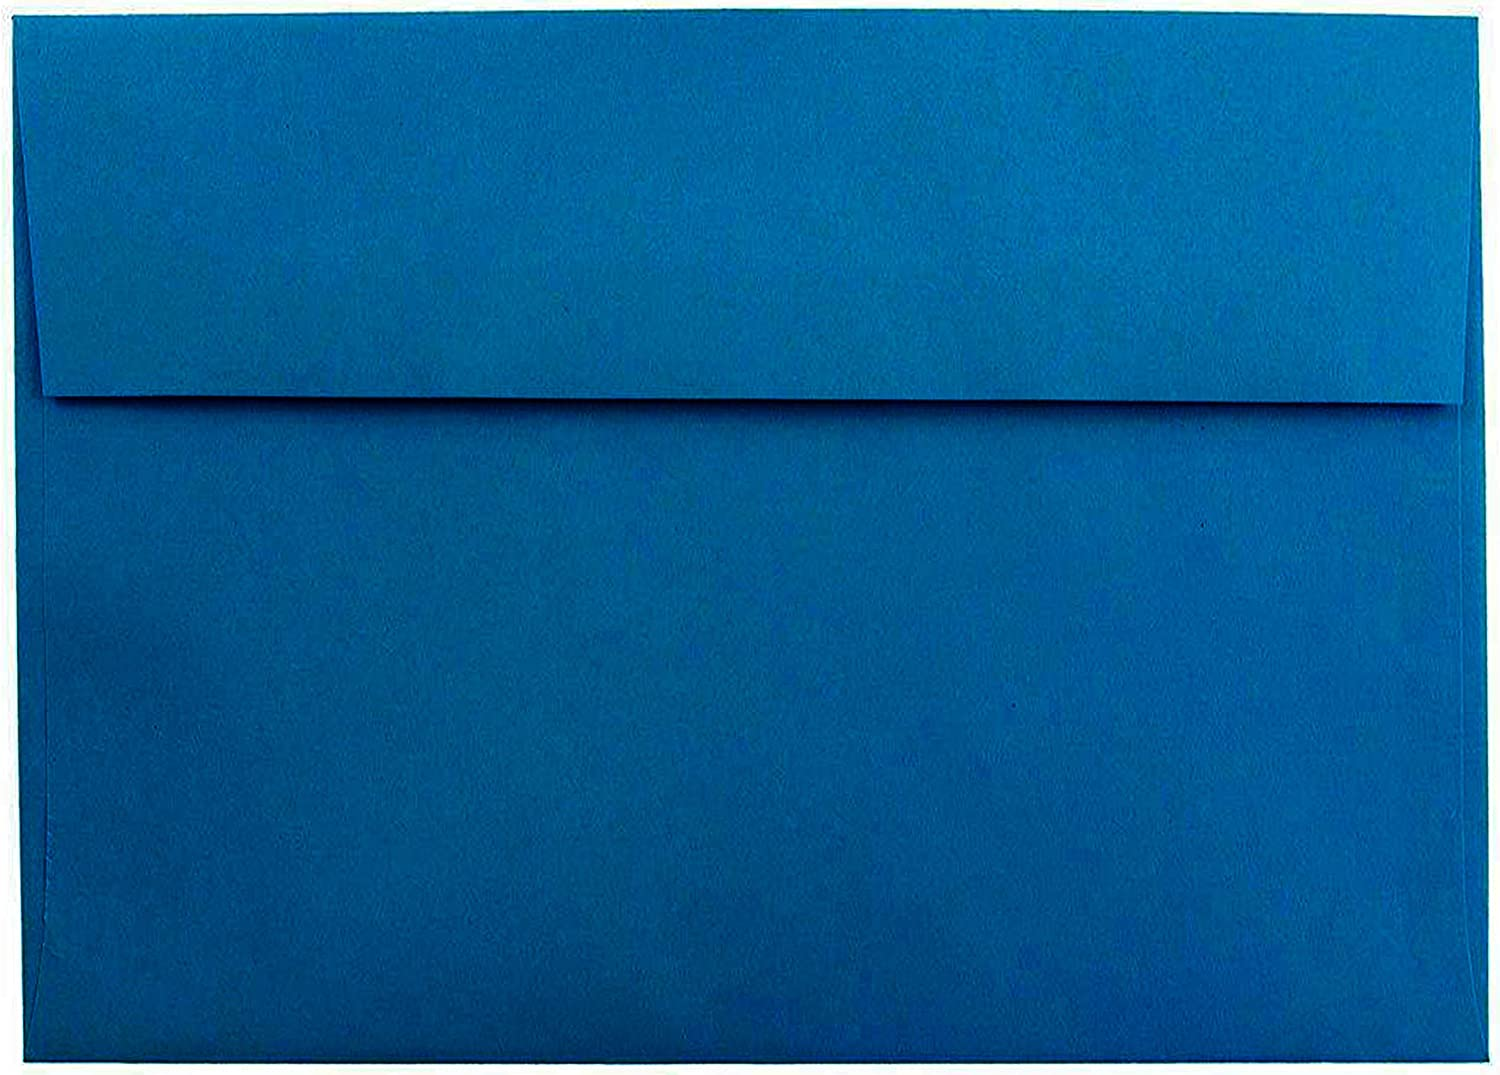 Deep Royal Blue 50 Boxed Manufacturer OFFicial shop A6 4-3 Envelopes for 2 x Weekly update 4 6-1 4-1